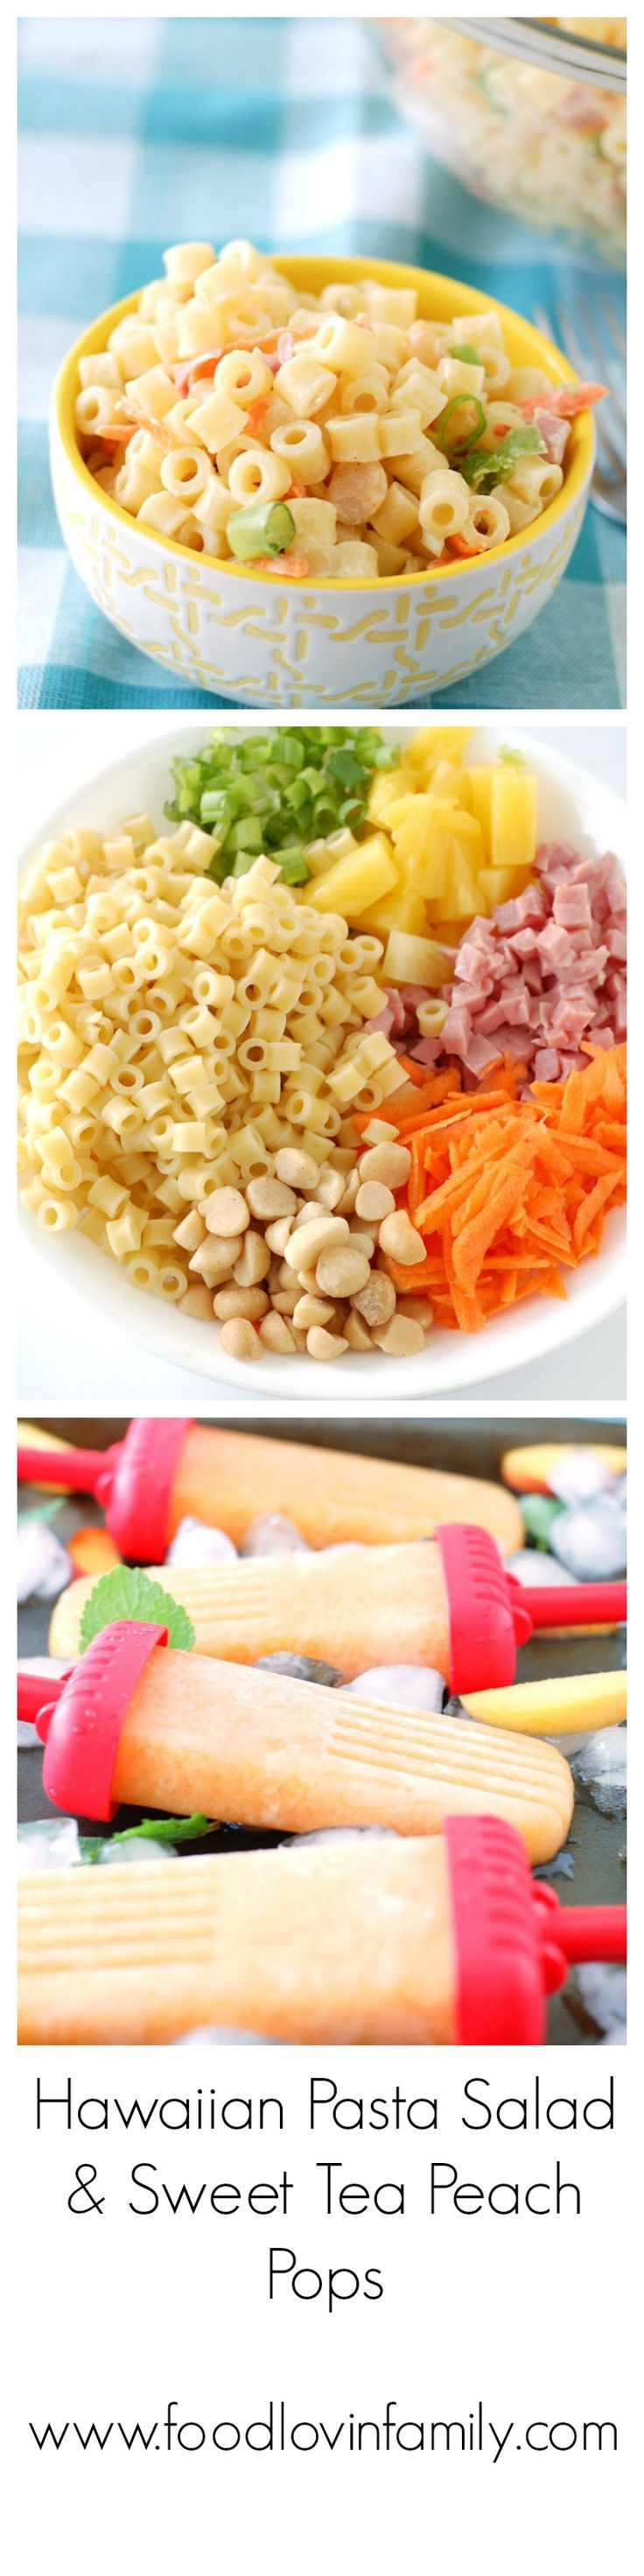 Summer calls for Hawaiian pasta salad and Sweet Tea Peach Popsicles! The pasta salad is a fabulous side dish, and the popsicles make a fun treat on a hot day! These recipes will be sure to delight your family.